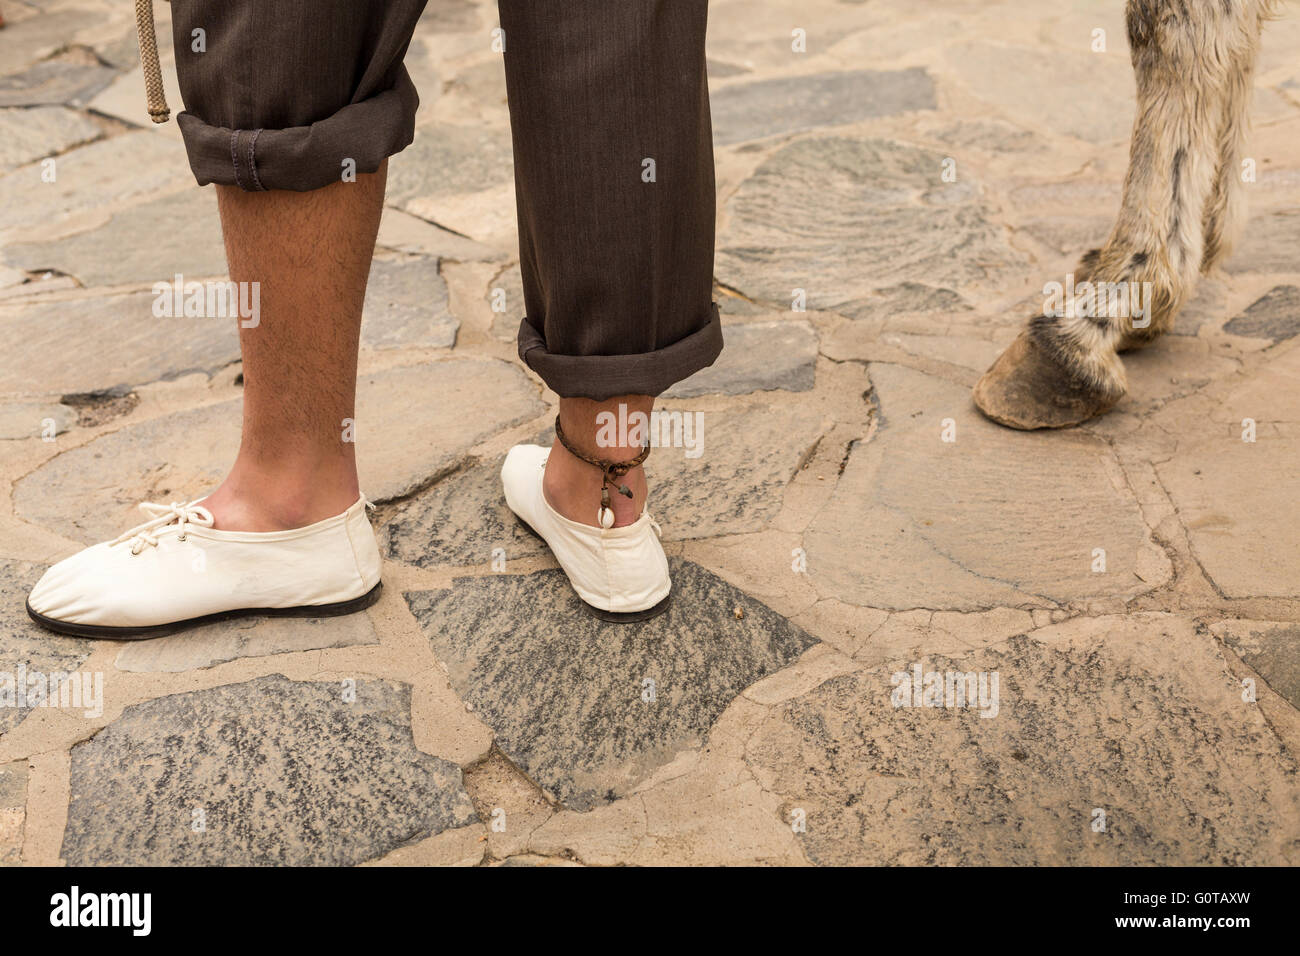 Mans legs and feet with leather anklet next to donkey hooves, Adeje, Tenerife, Canary Islands, Spain. - Stock Image